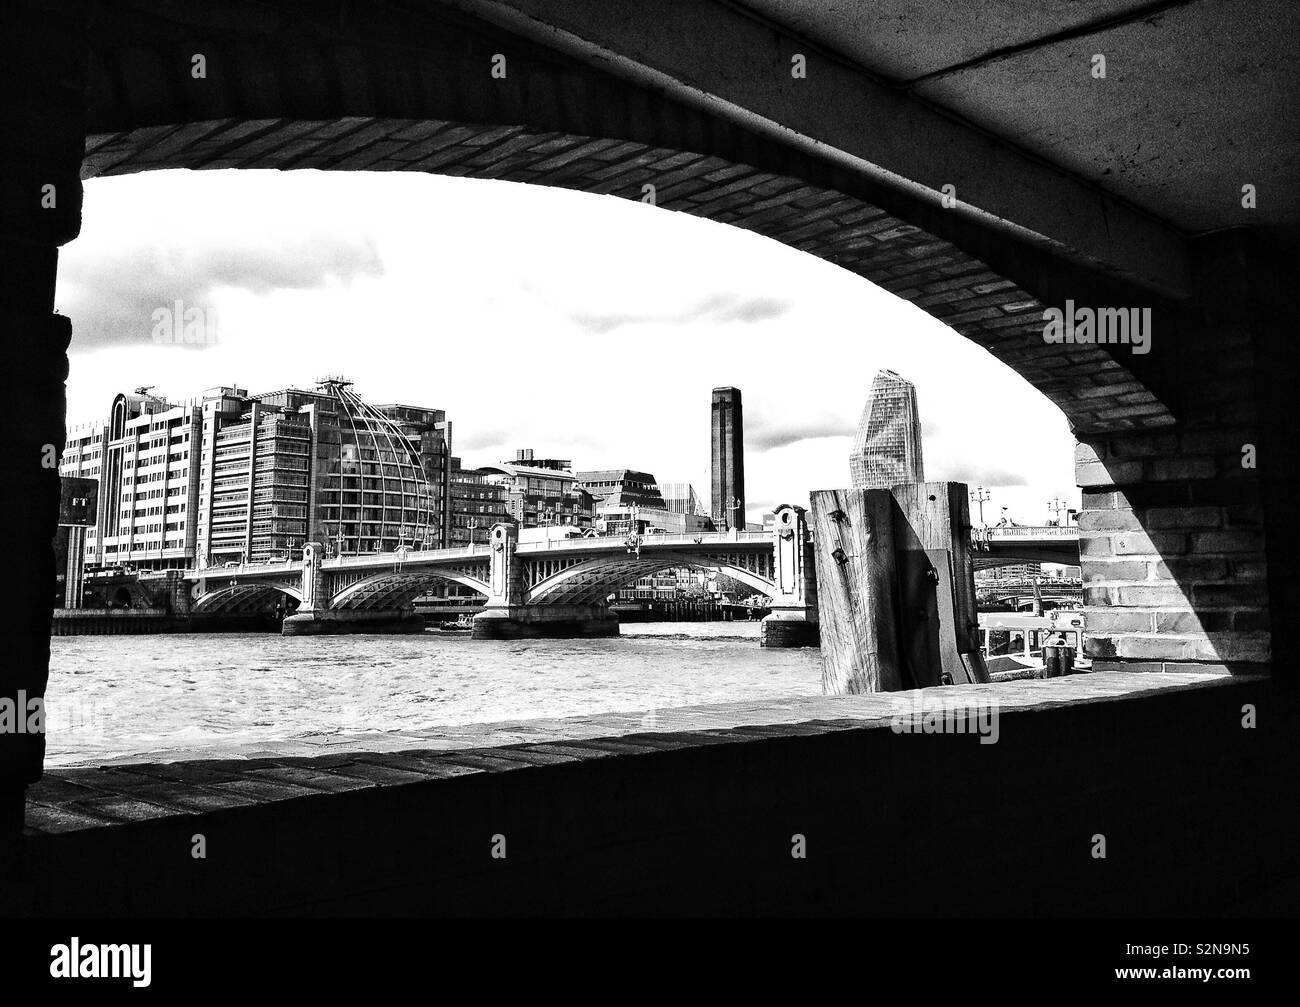 View along the River Thames looking towards Southwark bridge and the Southbank, London, England. - Stock Image